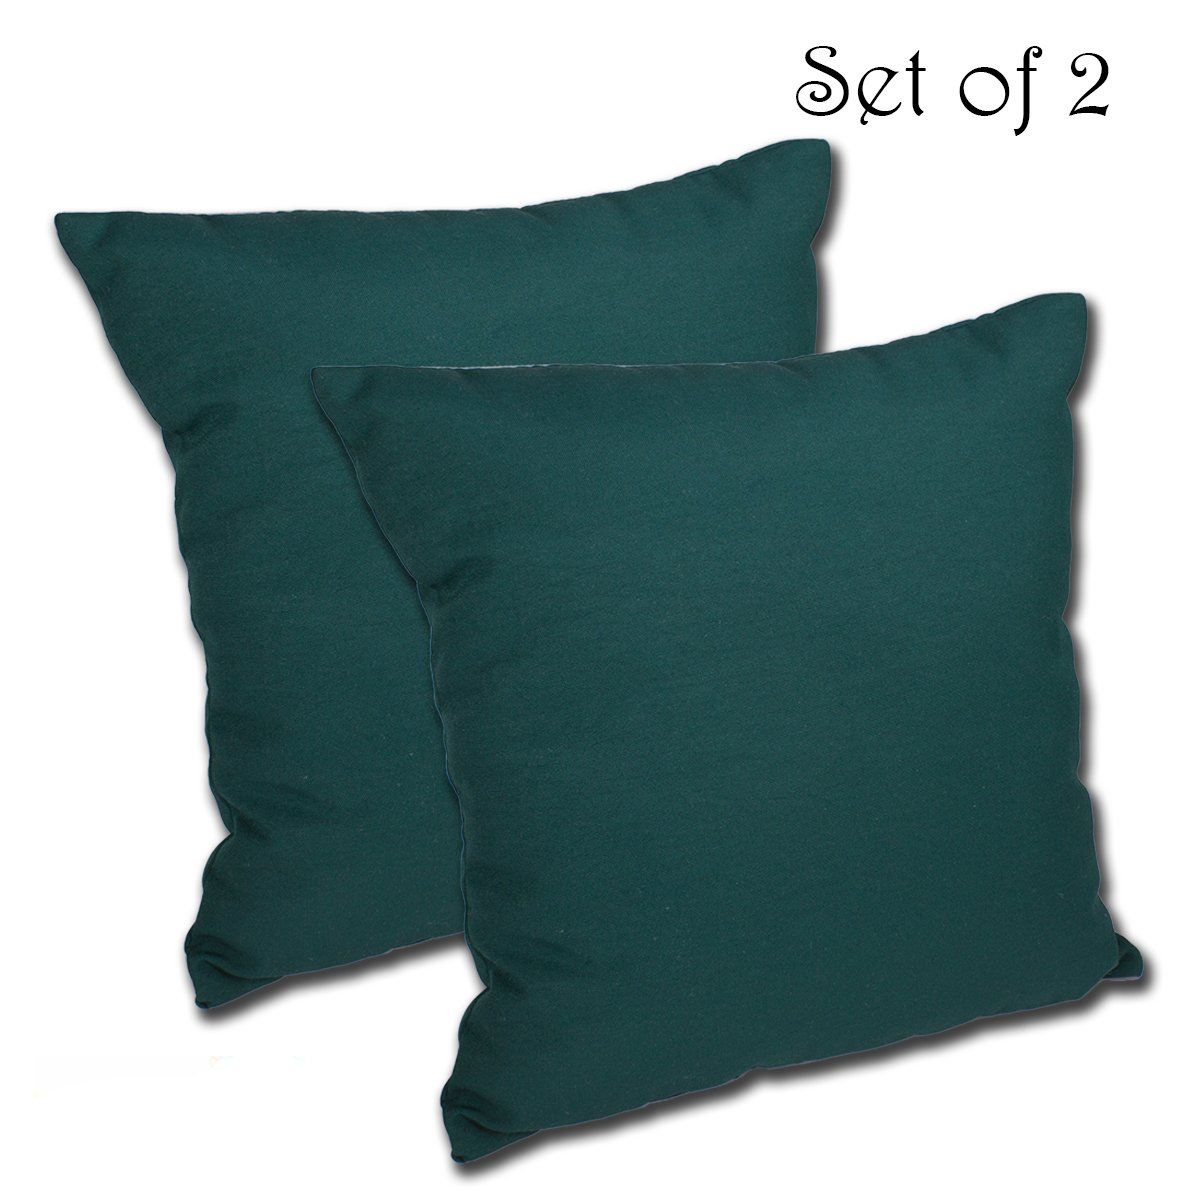 Comfort Classics Inc. Set of 2 16W x 16D x 5H Spun Polyester Outdoor Throw Pillow in Solid Spruce